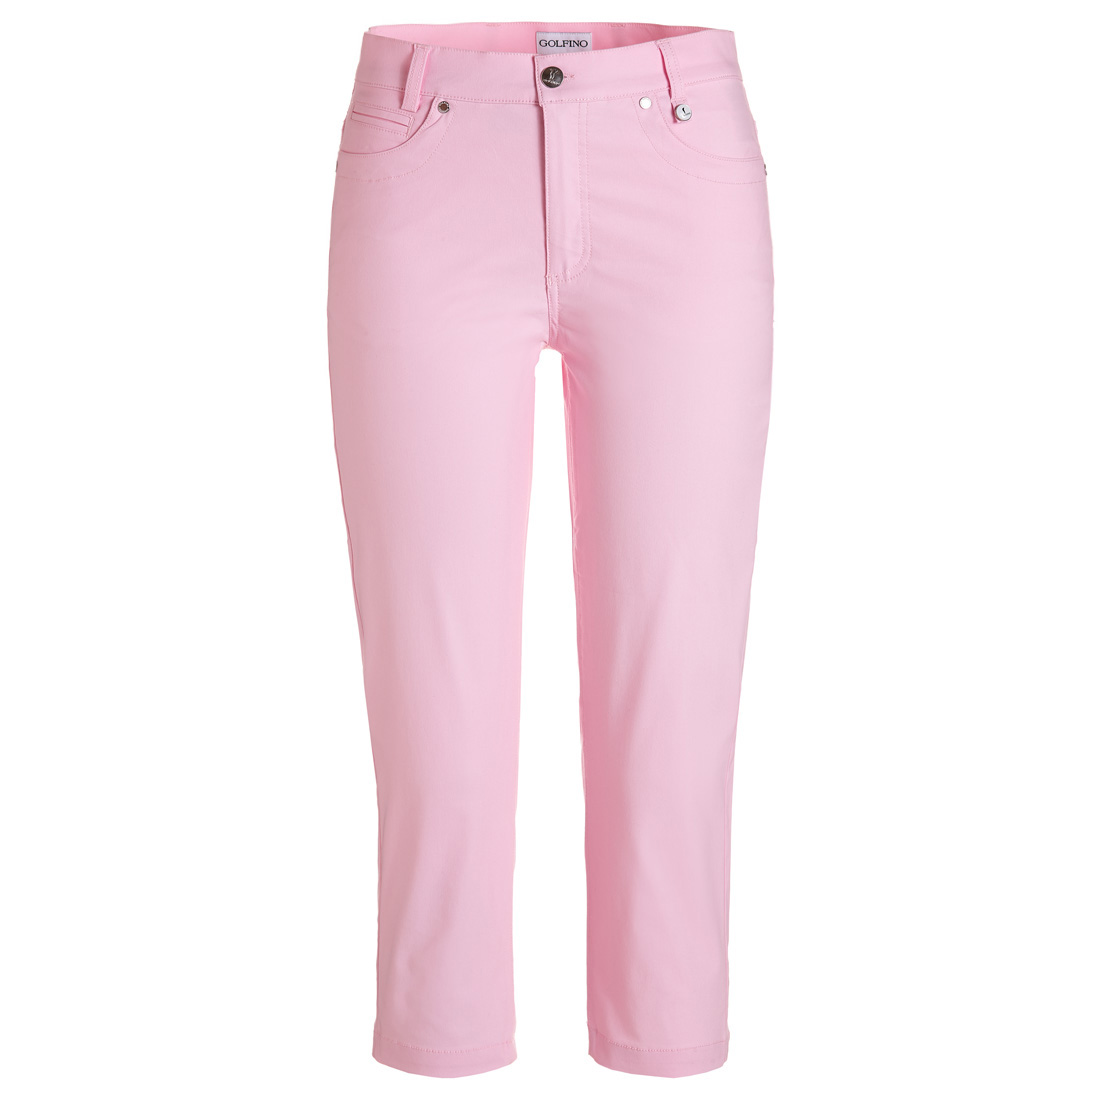 Leichte Techno Stretch Capri